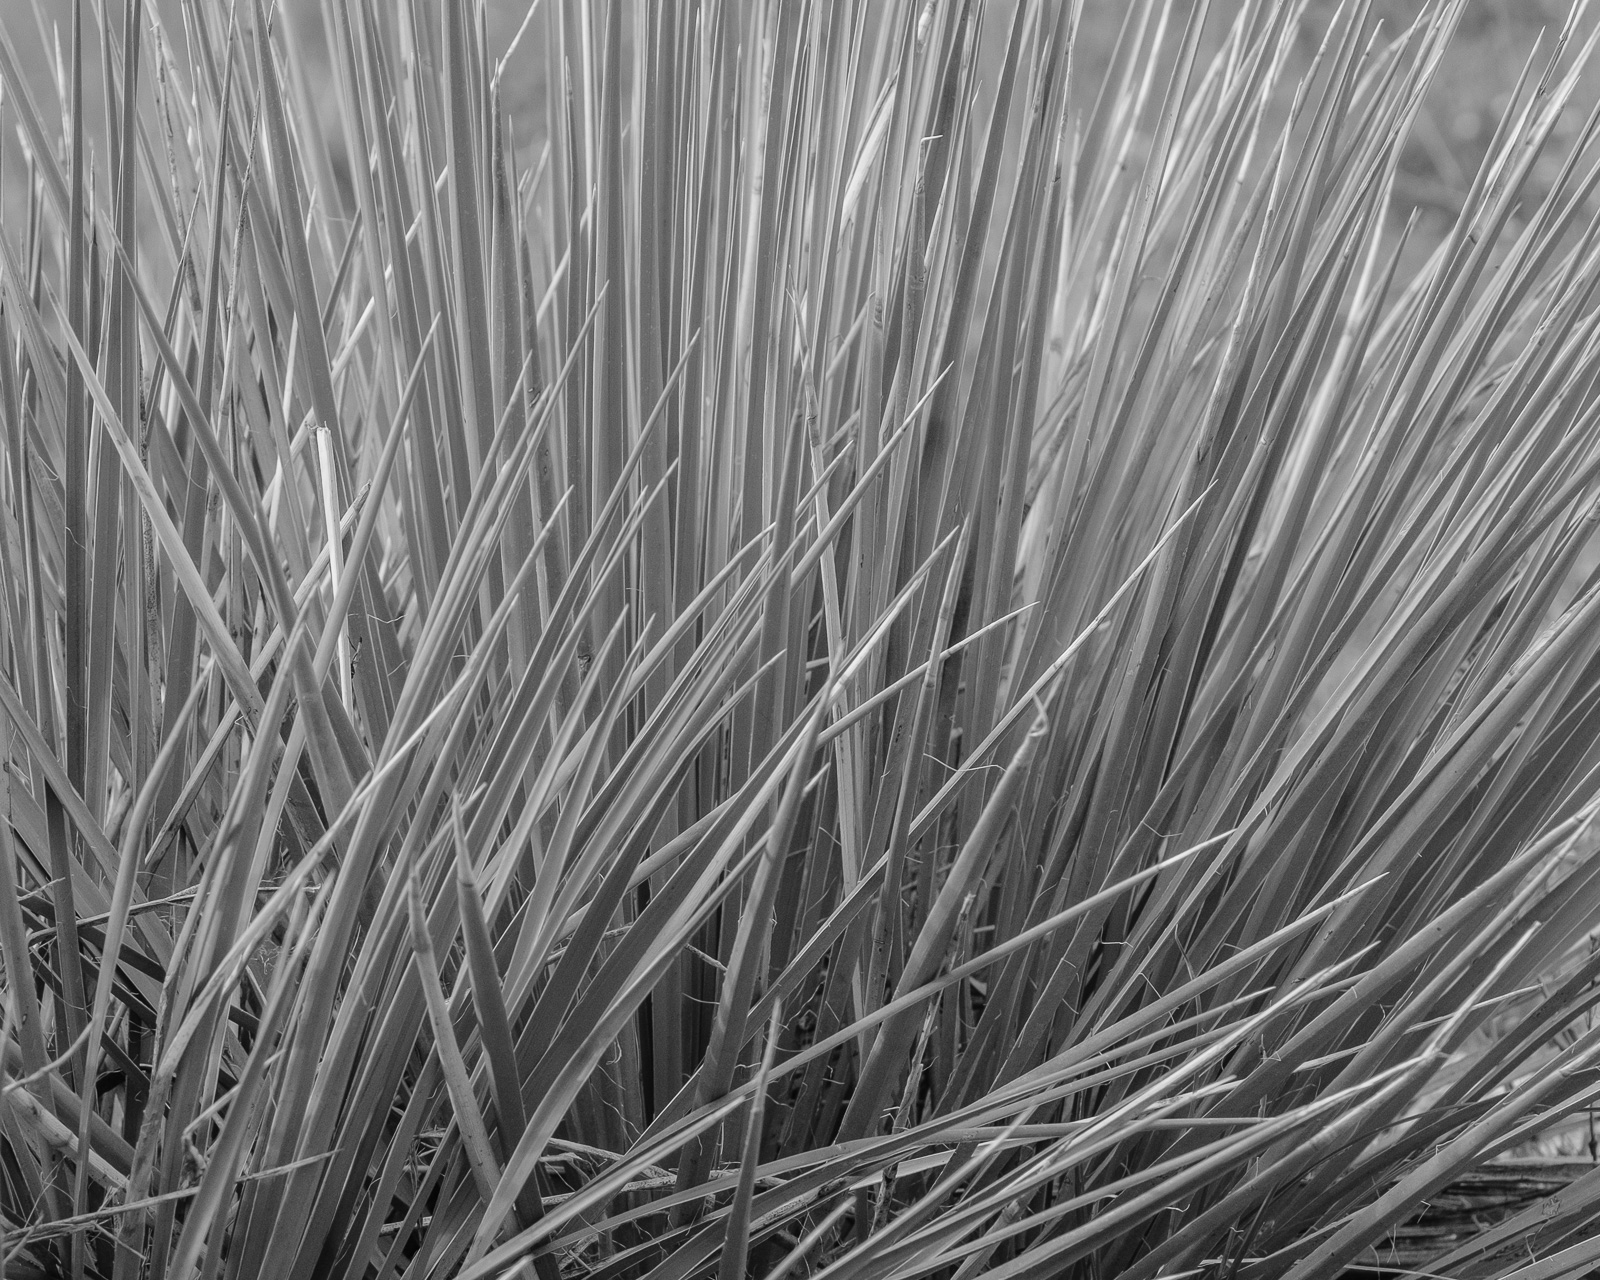 Day 172 - 365 Day B&W Photo Challenge - Texture of a backlit Yucca Plant -  Fujifilm X-T3, Acros R Film Simulation